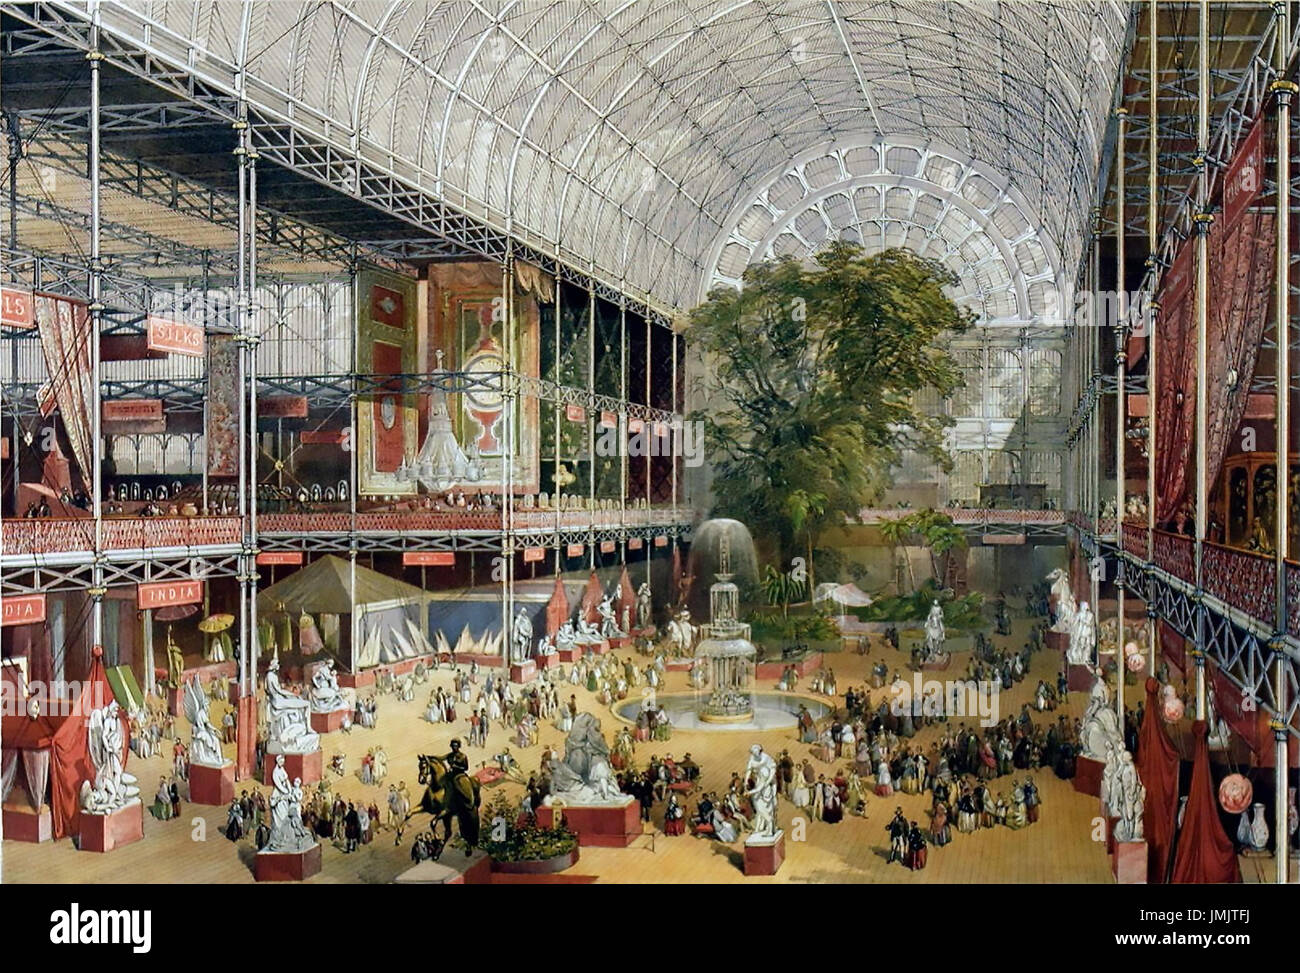 GREAT EXHIBITION 1851. The transept of the Crystal Palace from the Grand entrance as published in the souvenir book - Stock Image